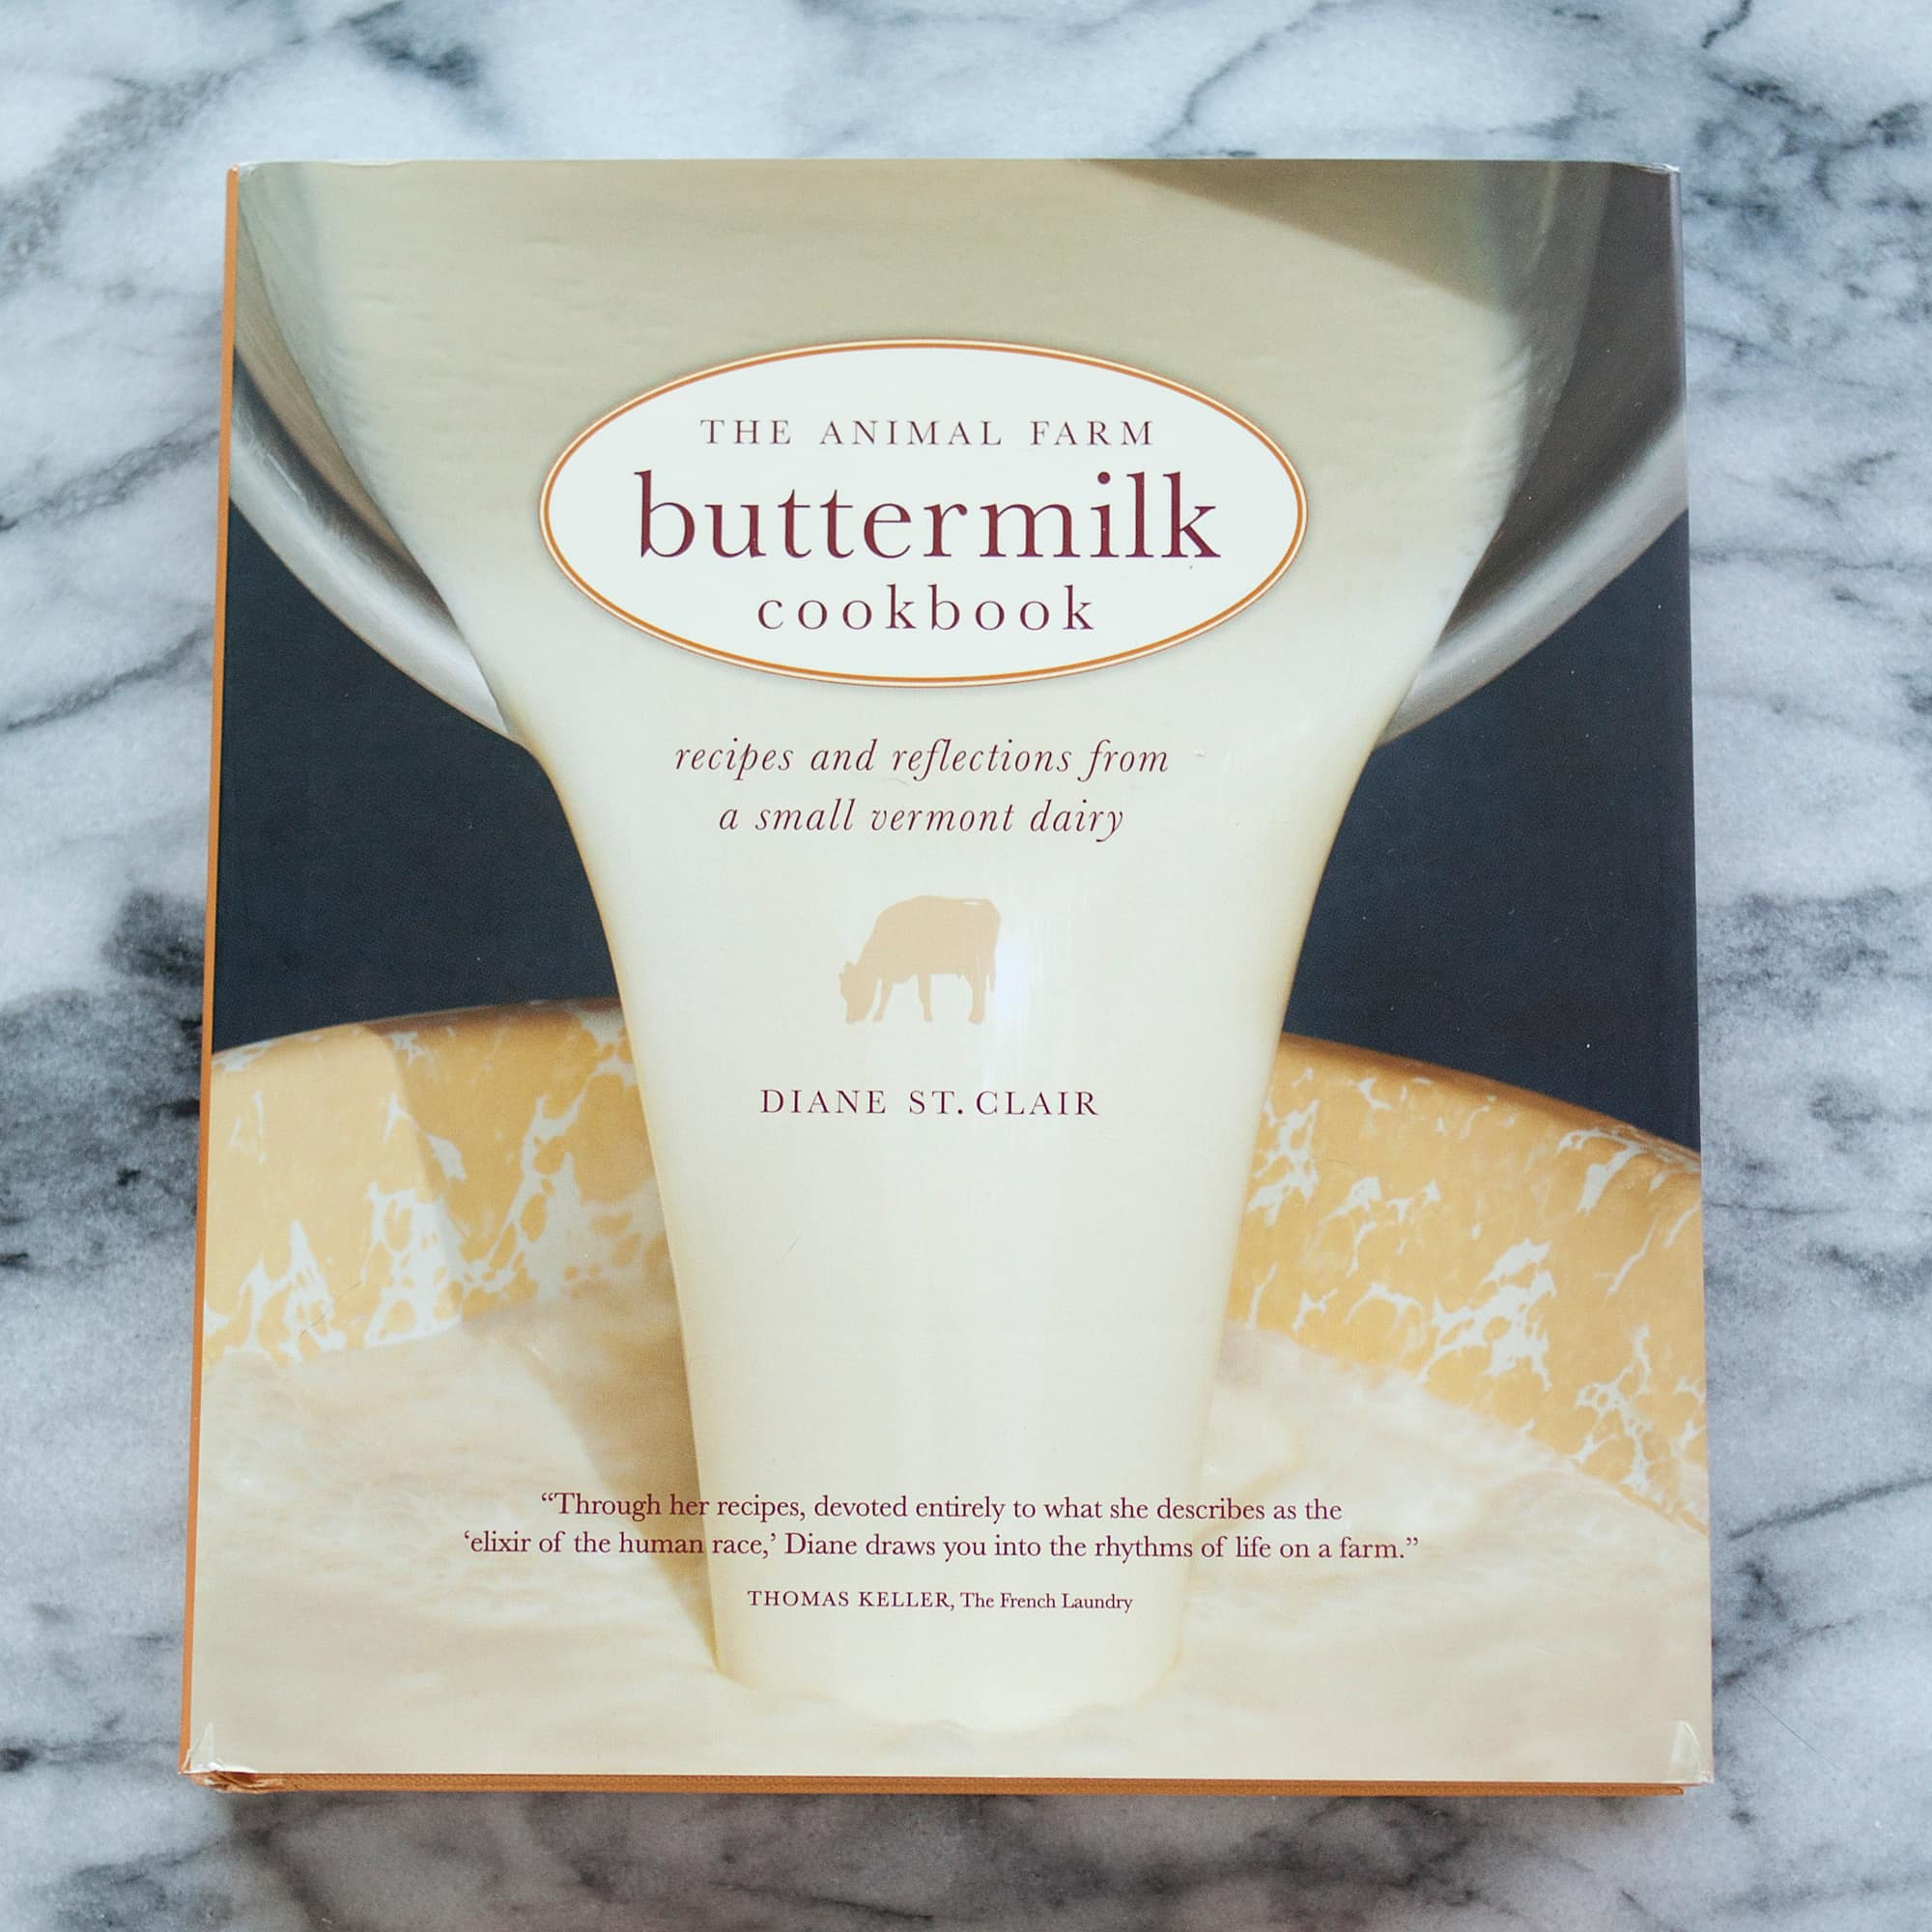 The Animal Farm Buttermilk Cookbook by Diane St. Clair: gallery image 1